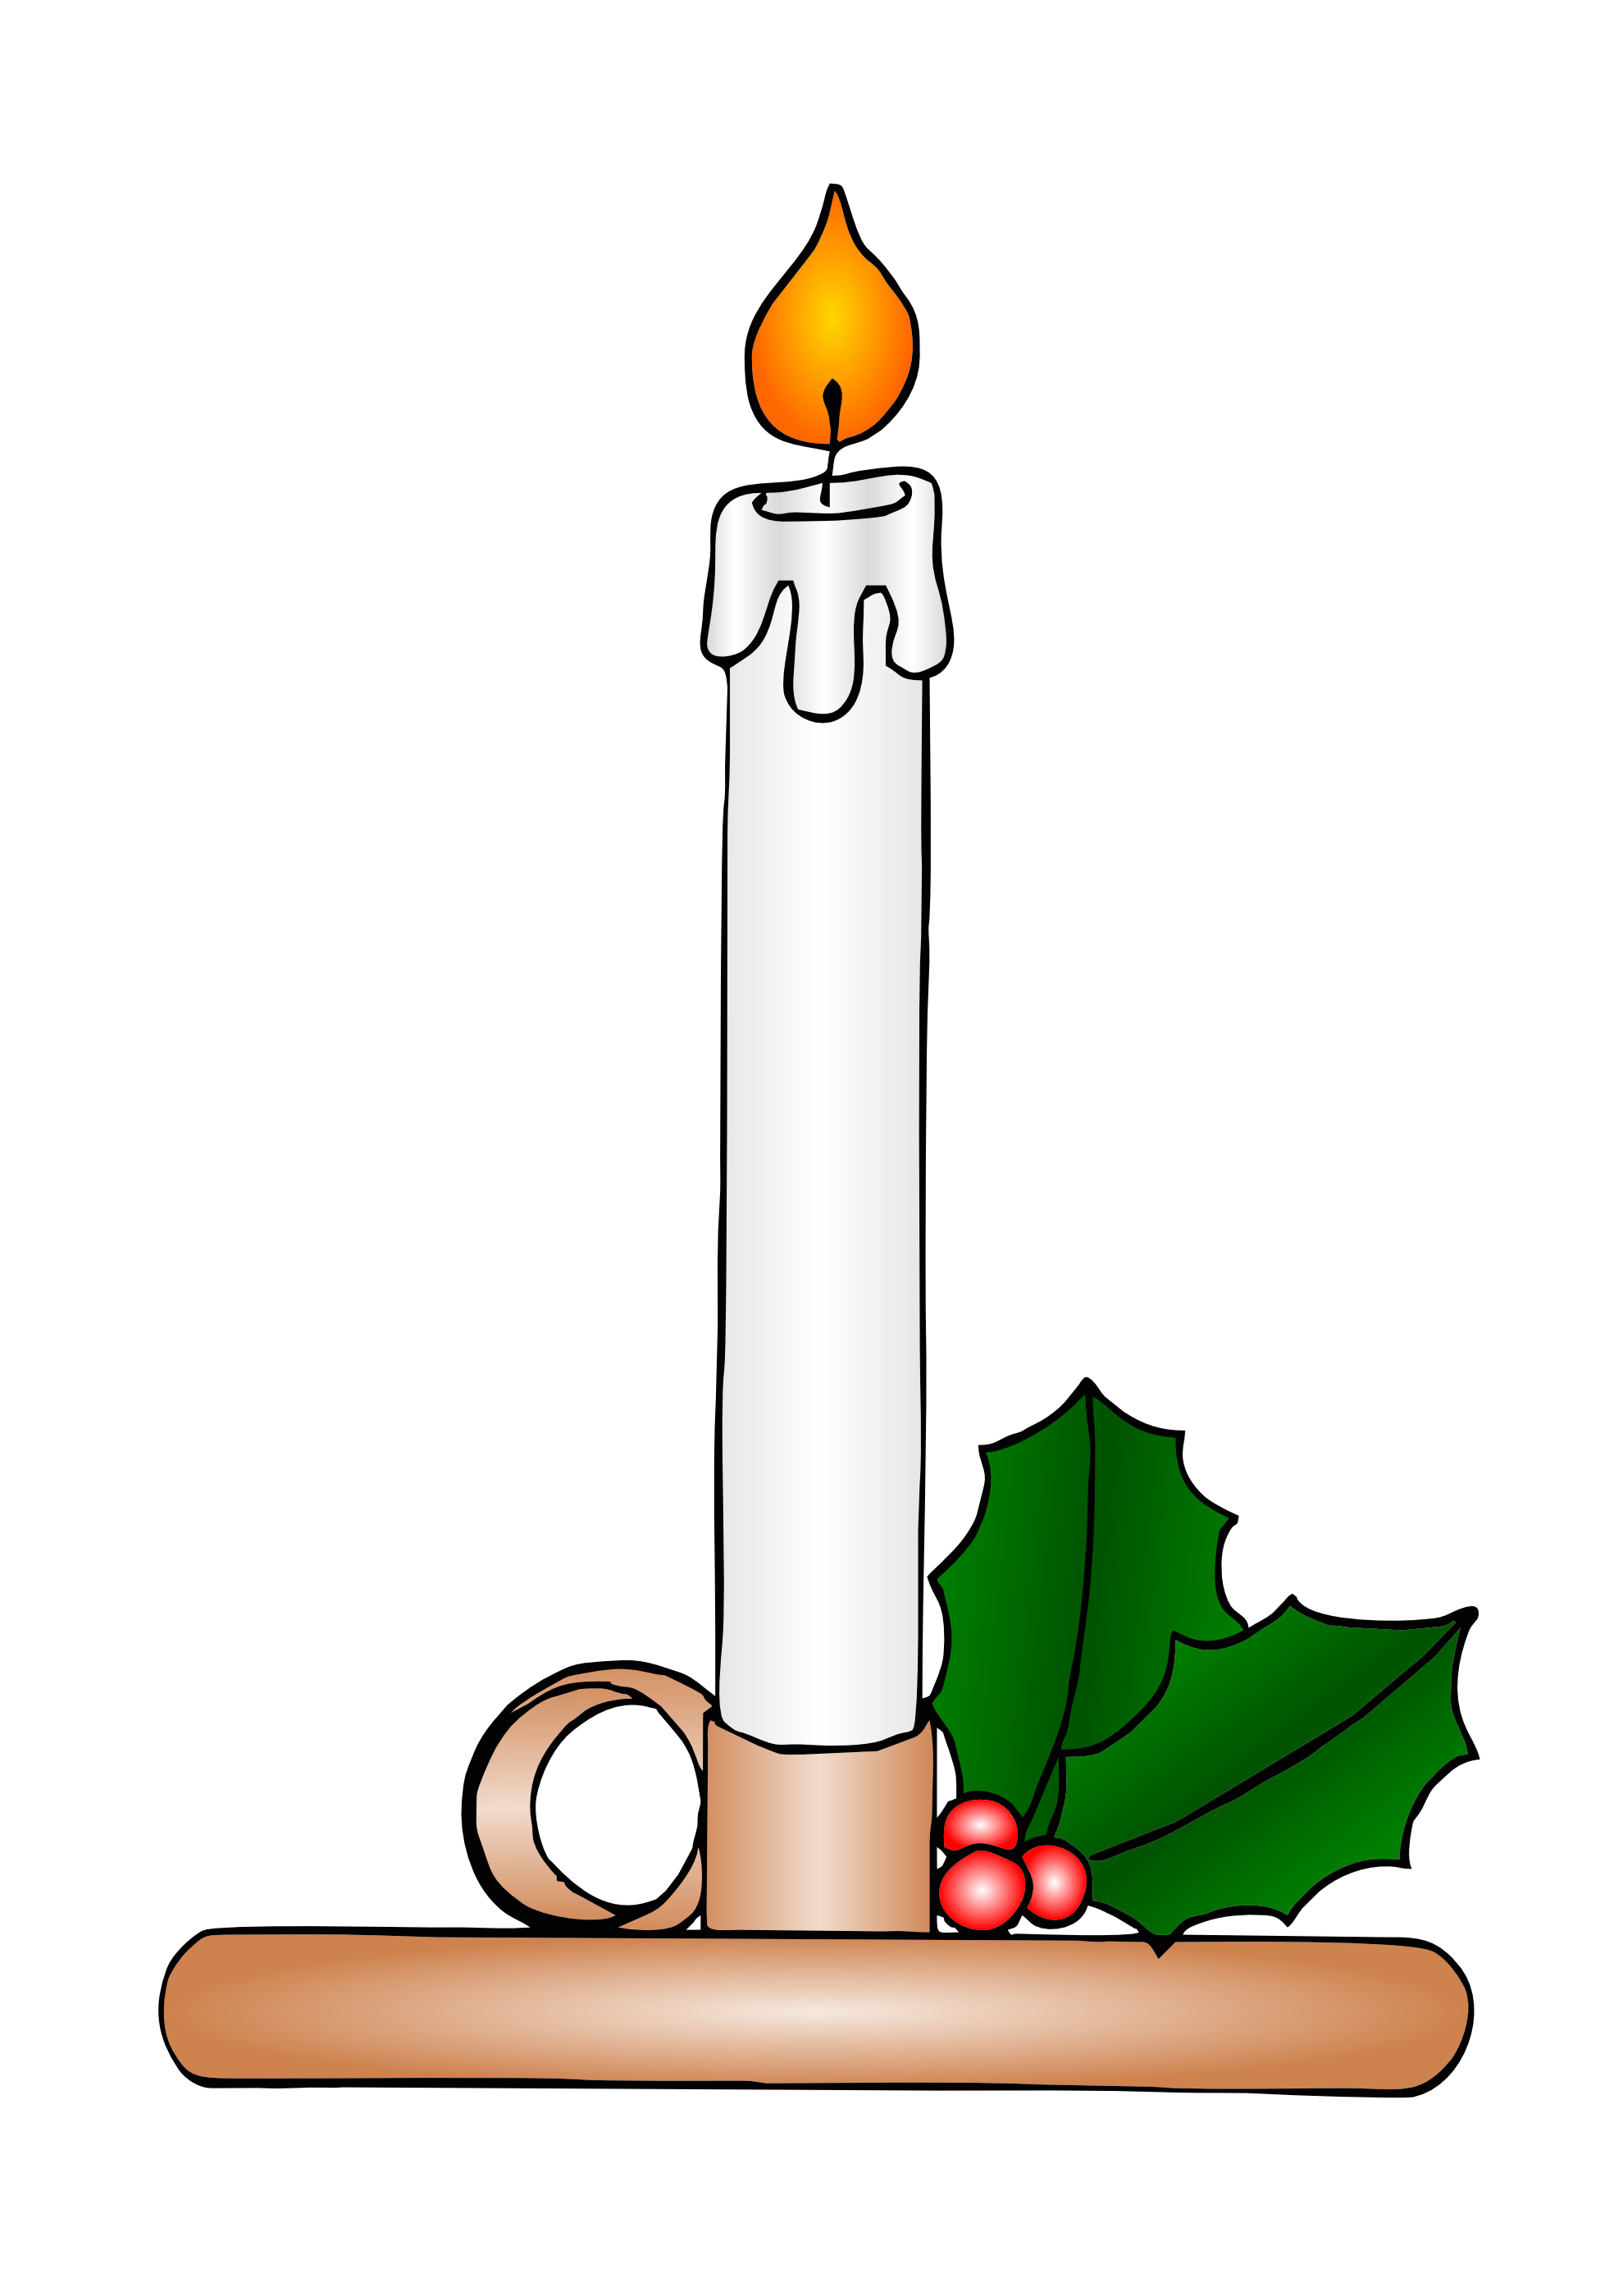 Christmas Candle Clipart - Cliparts.co